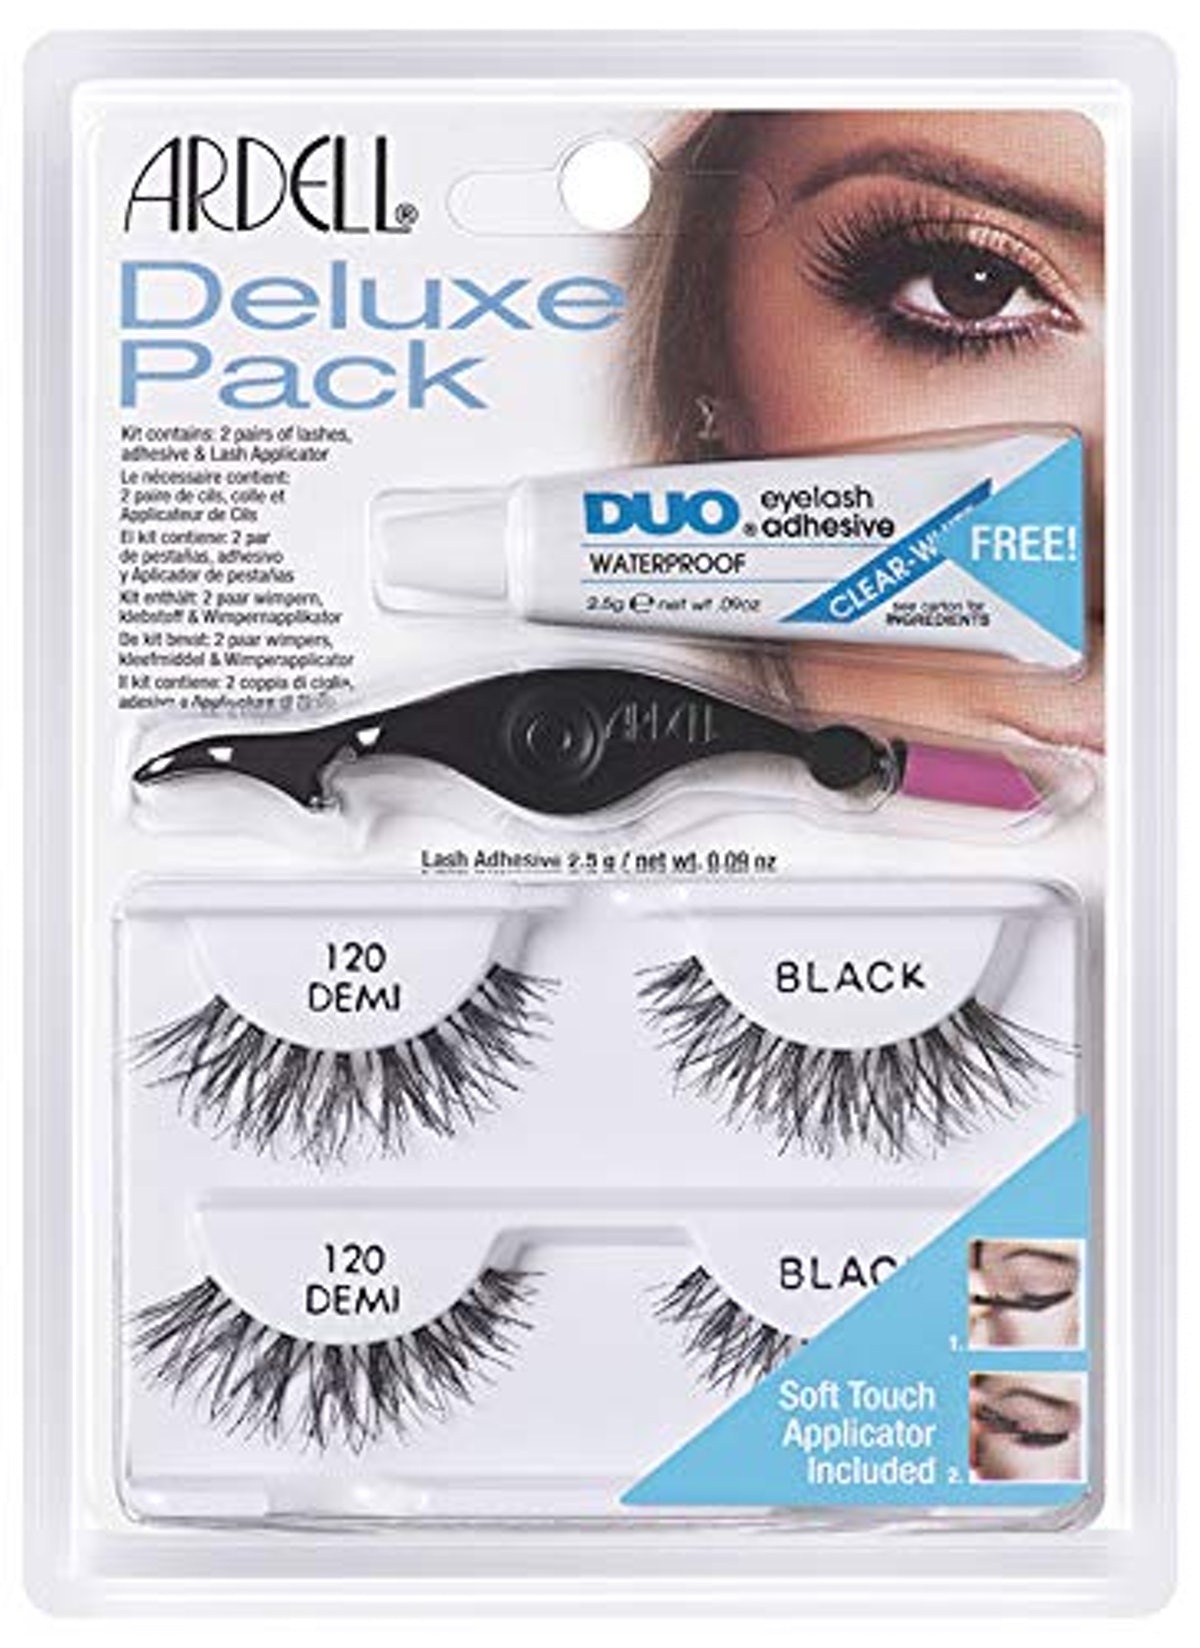 Ardell Deluxe Pack (2 Pairs)